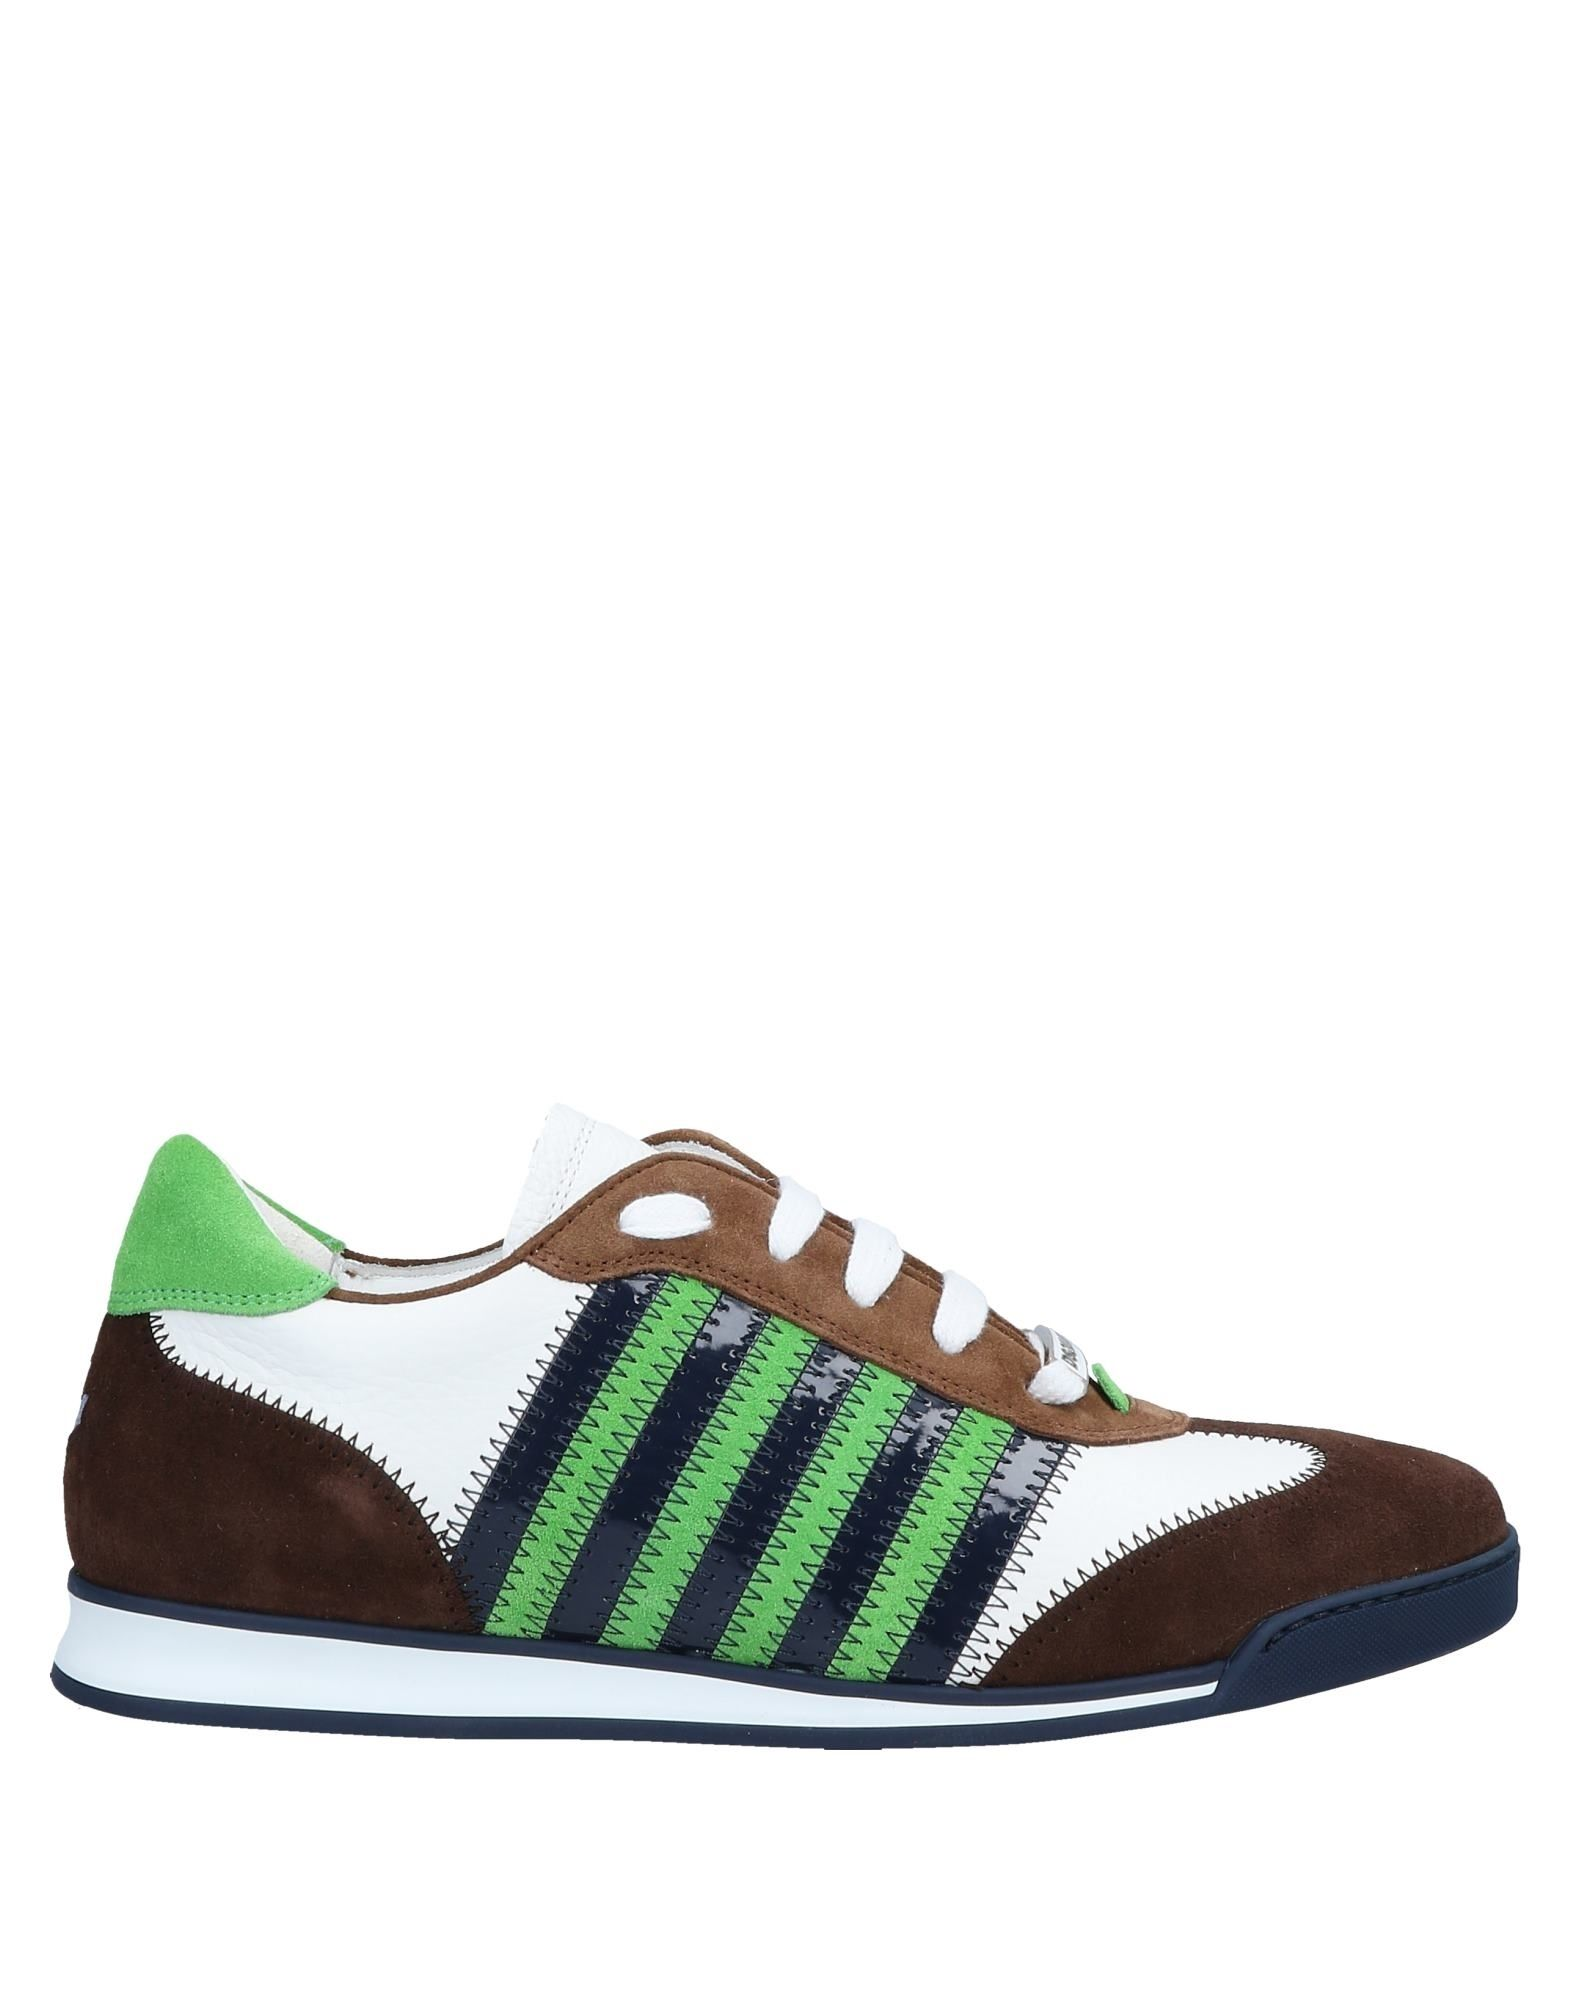 Dsquared2 Sneakers - Men Dsquared2 Sneakers online 11553824IW on  Canada - 11553824IW online c773b4